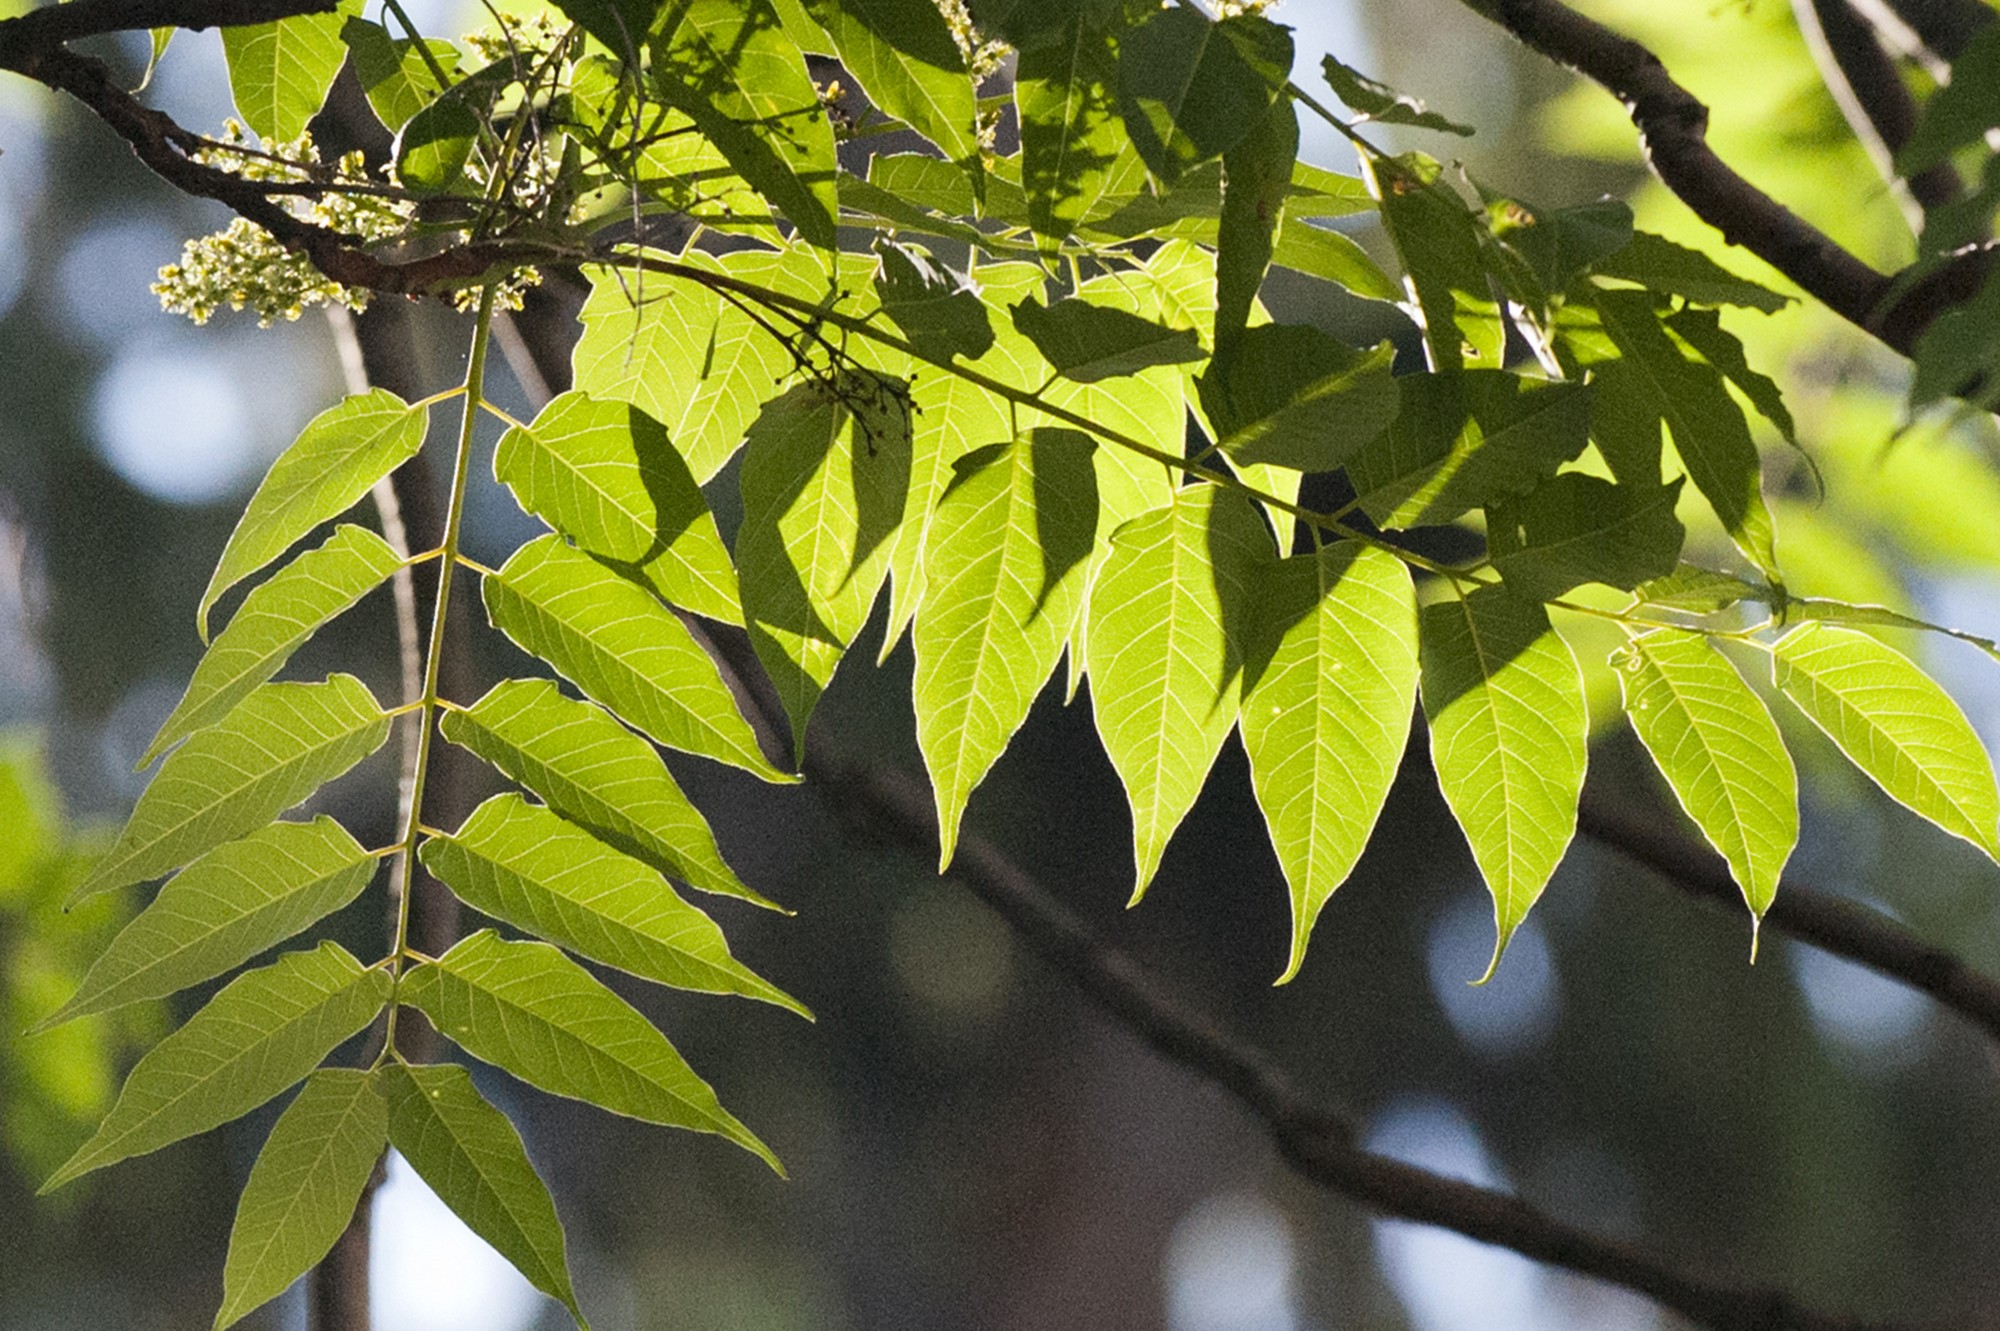 a view underneath leaves as the sun hits it from above